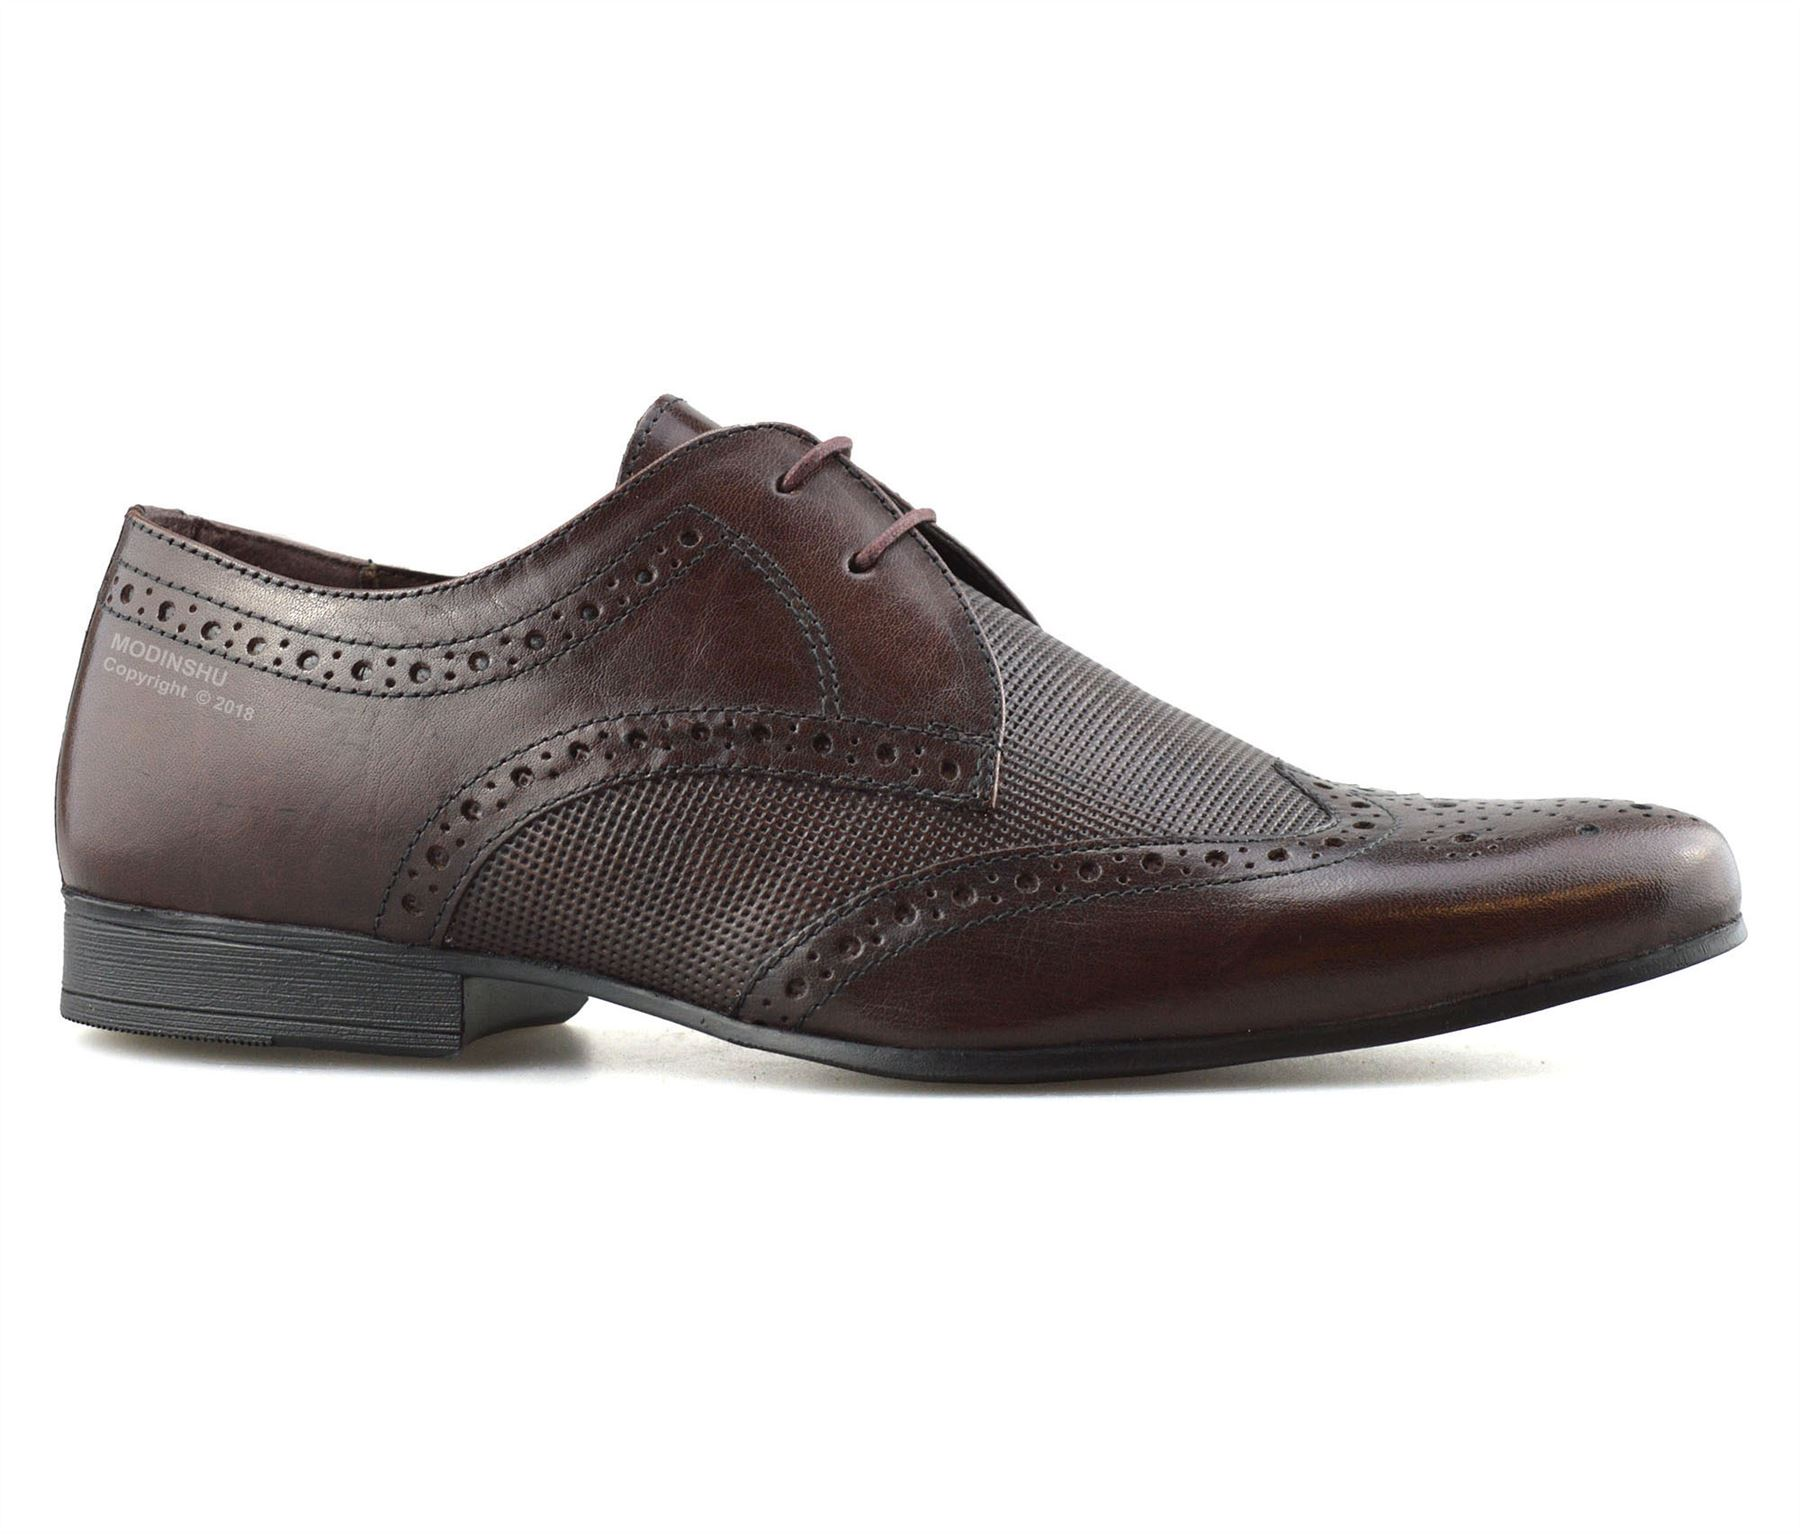 Mens-Leather-Lace-Up-Brogues-Smart-Formal-Office-Casual-Oxford-Brogue-Shoes-Size thumbnail 10